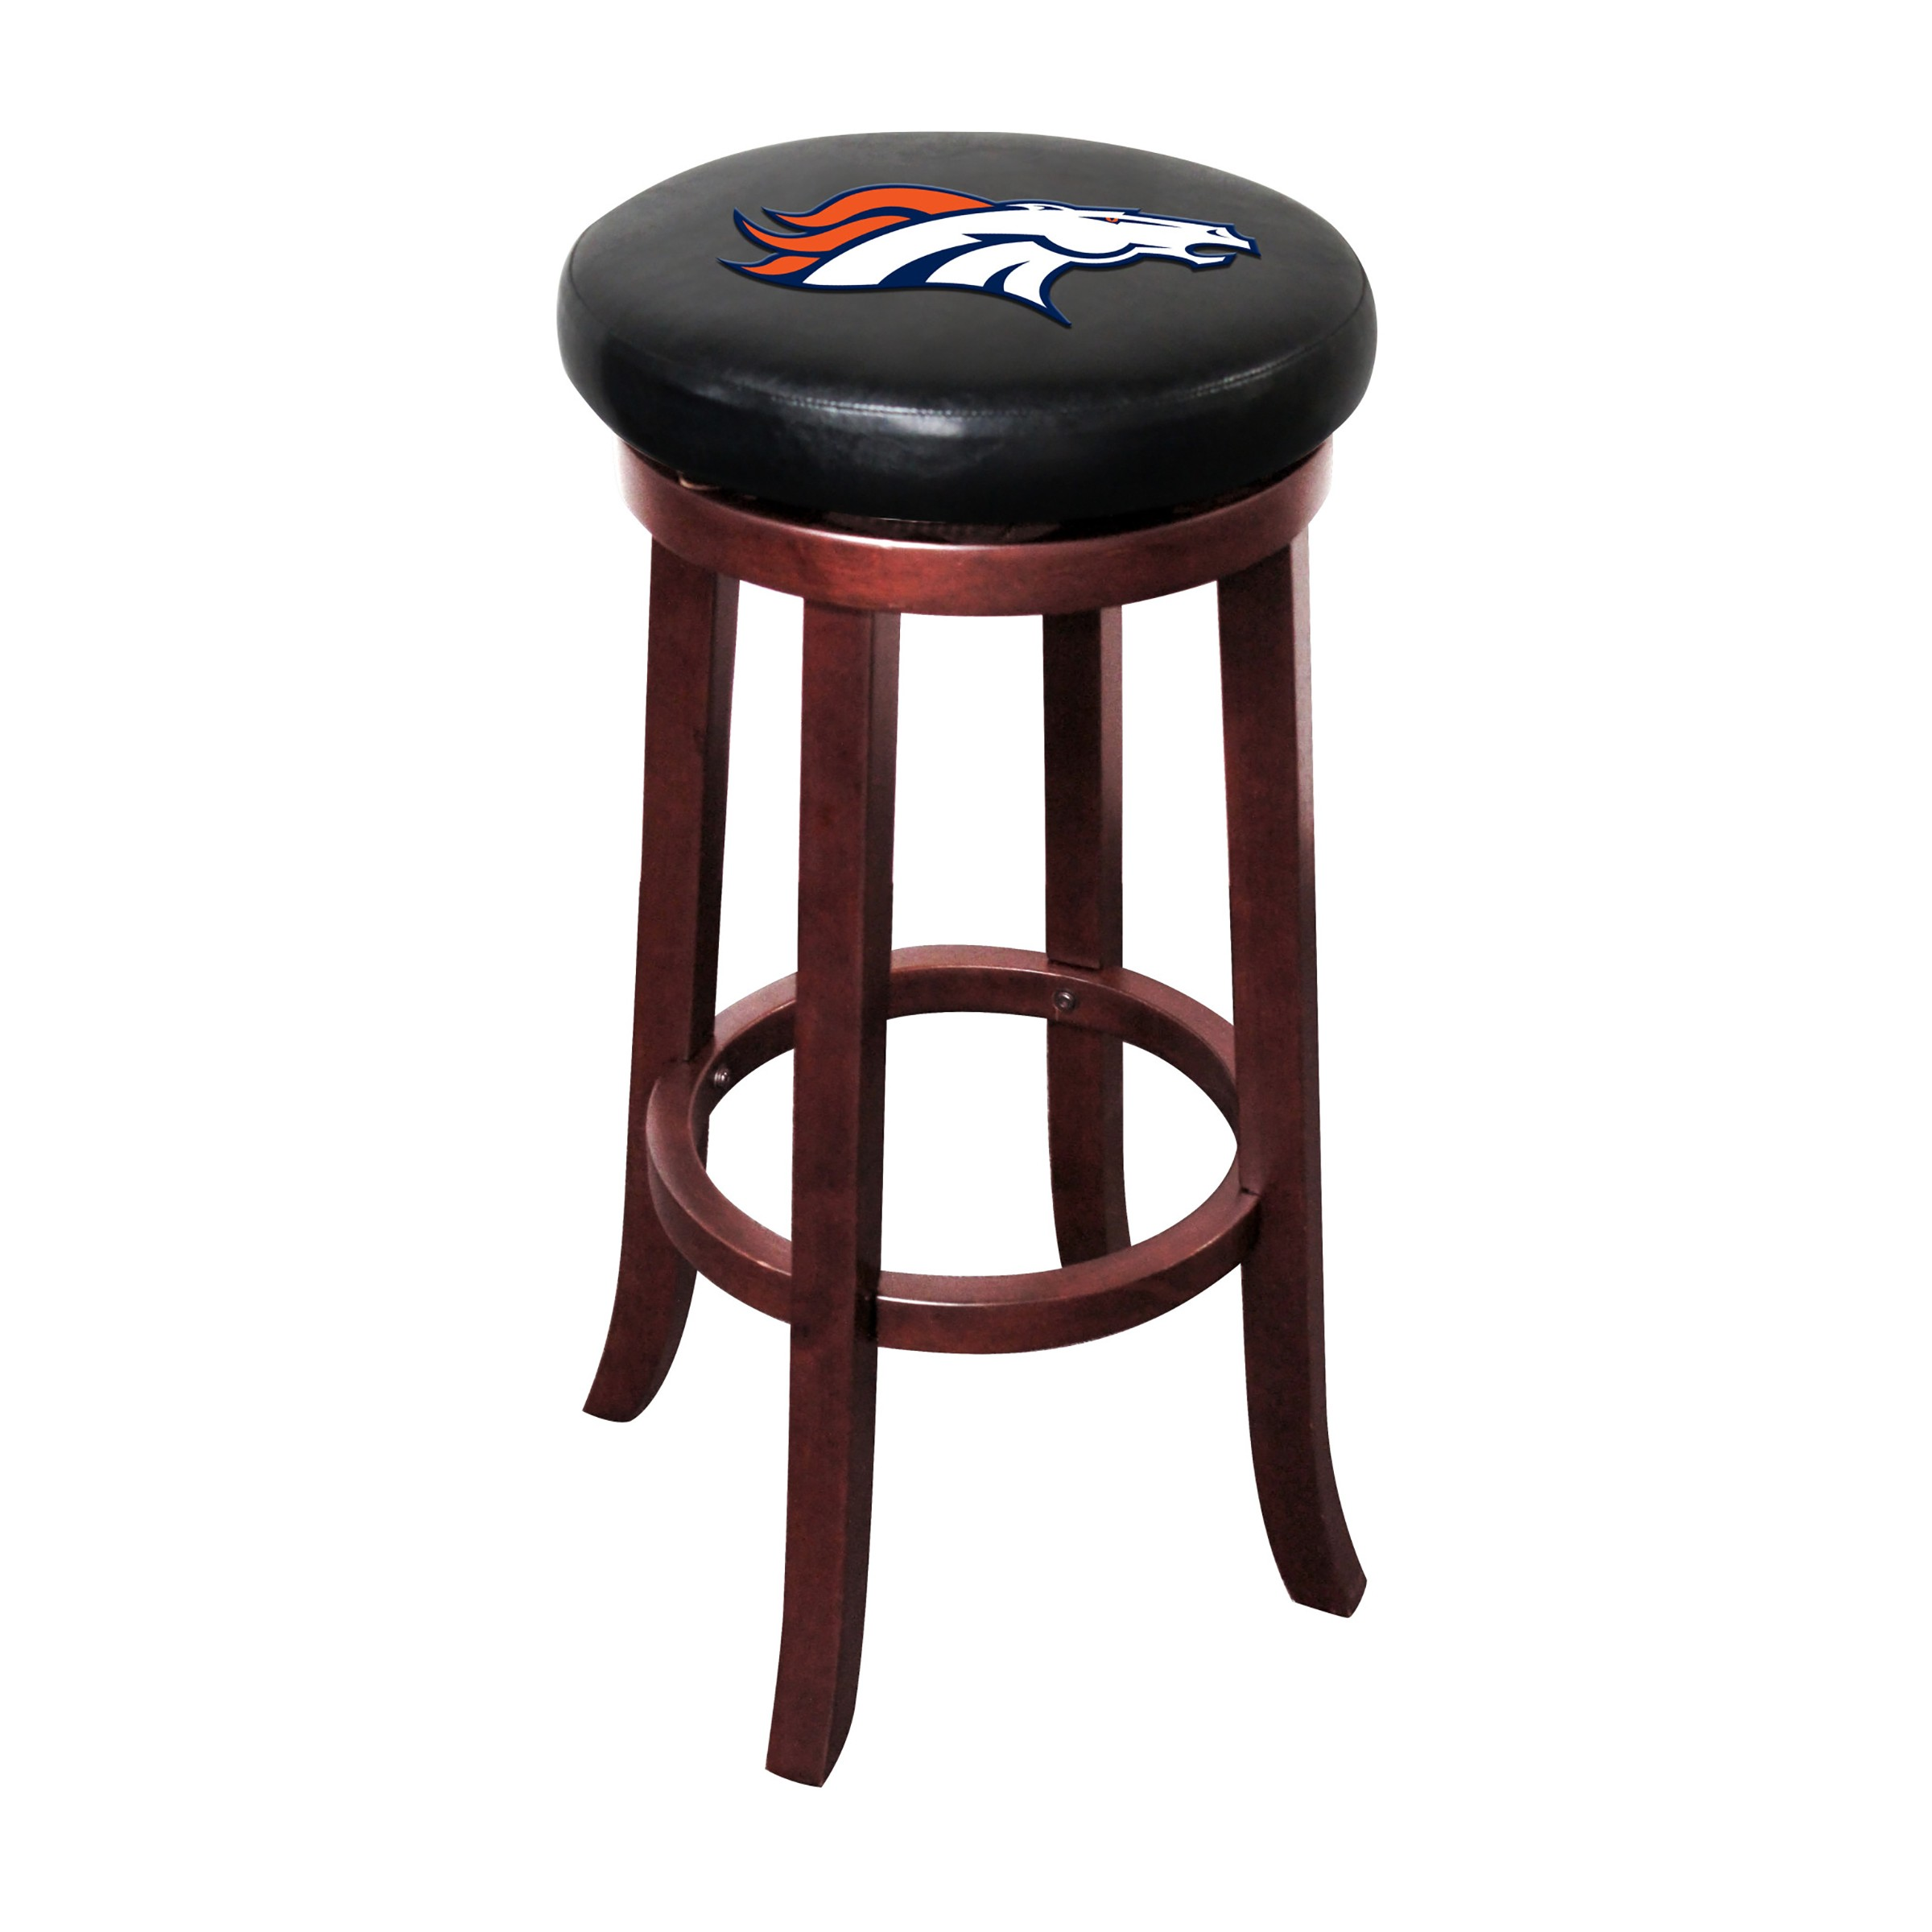 DENVER BRONCOS WOOD BAR STOOL